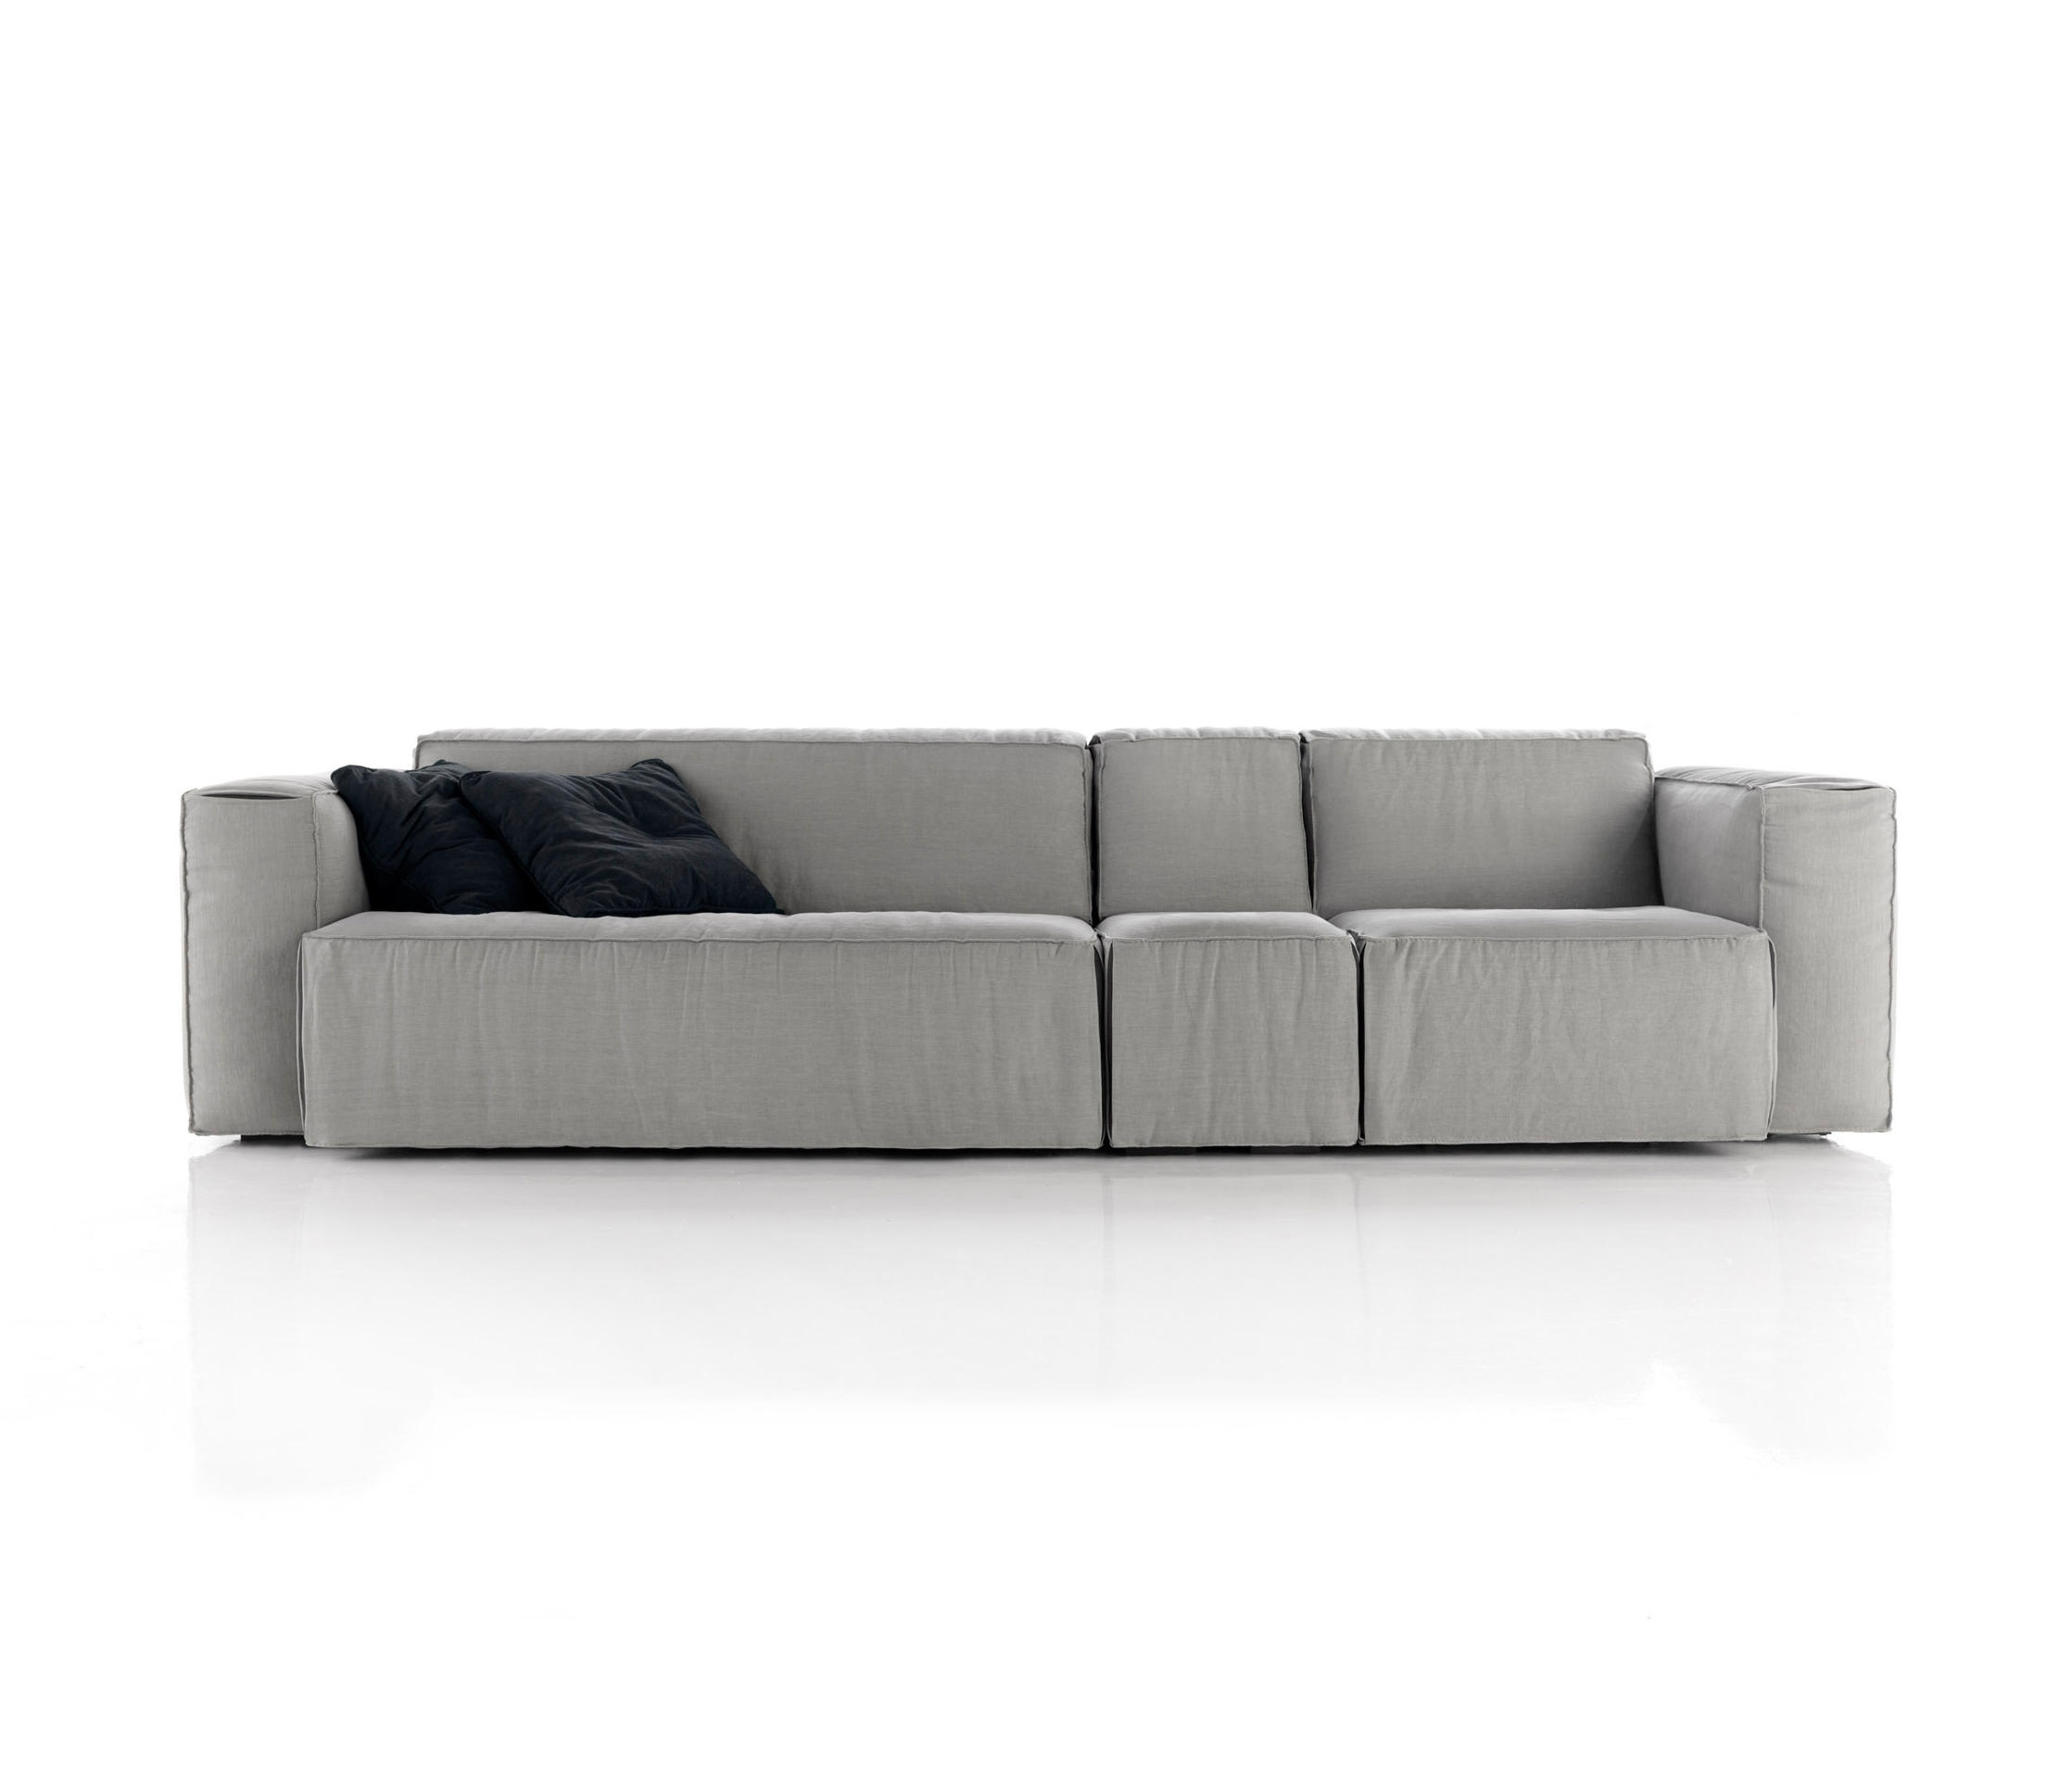 Soft Sofa – Lounge Sofas From Koo International | Architonic For Soft Sofas (Image 10 of 10)